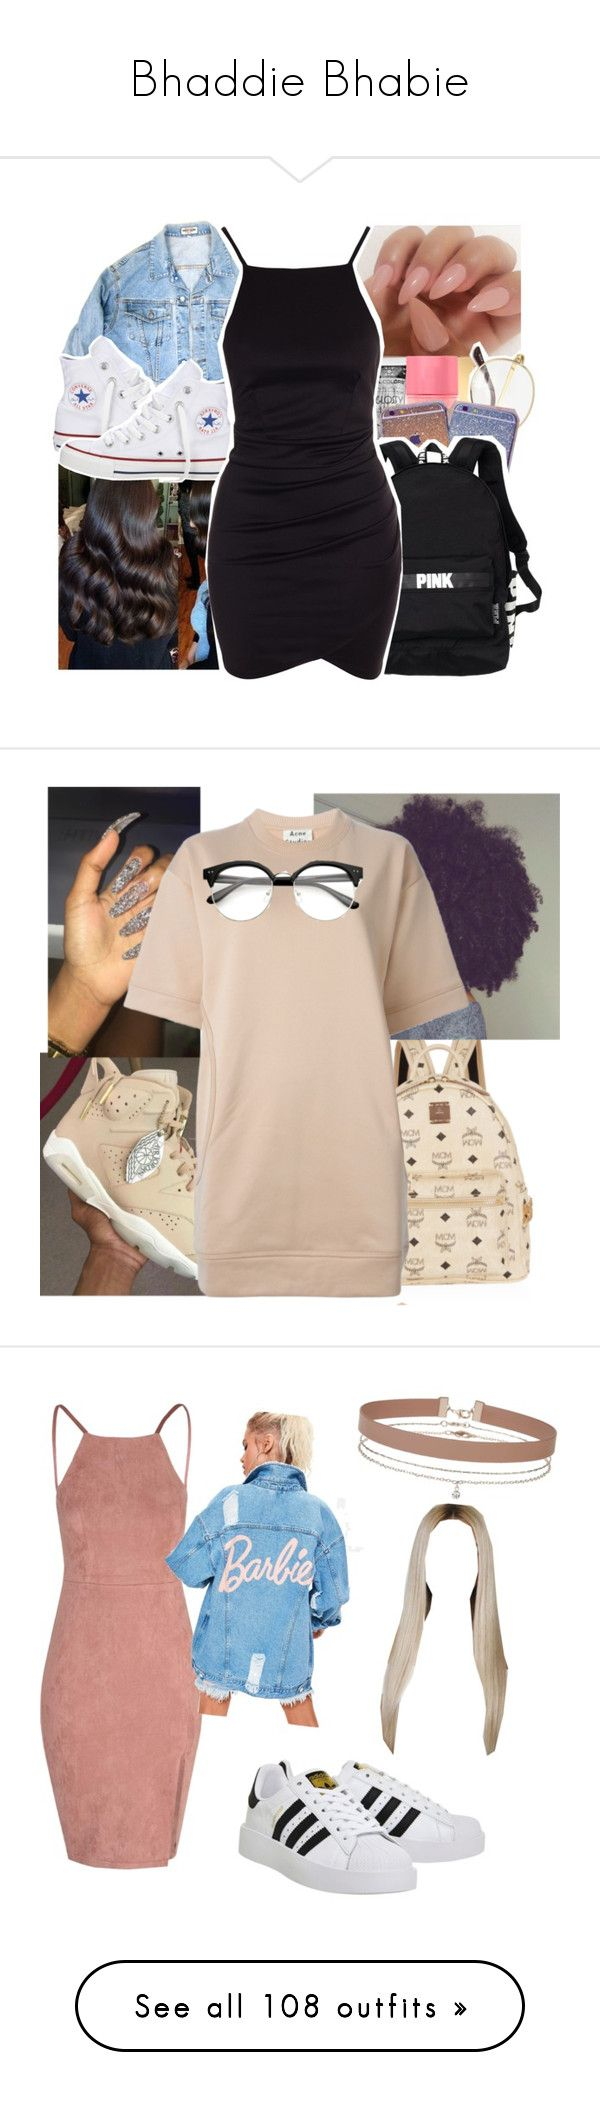 """""""Bhaddie Bhabie"""" by irdcordk ❤ liked on Polyvore featuring Yves Saint Laurent, GUESS, Converse, Victoria's Secret, MCM, Acne Studios, adidas, Miss Selfridge, Boohoo and Michael Kors"""